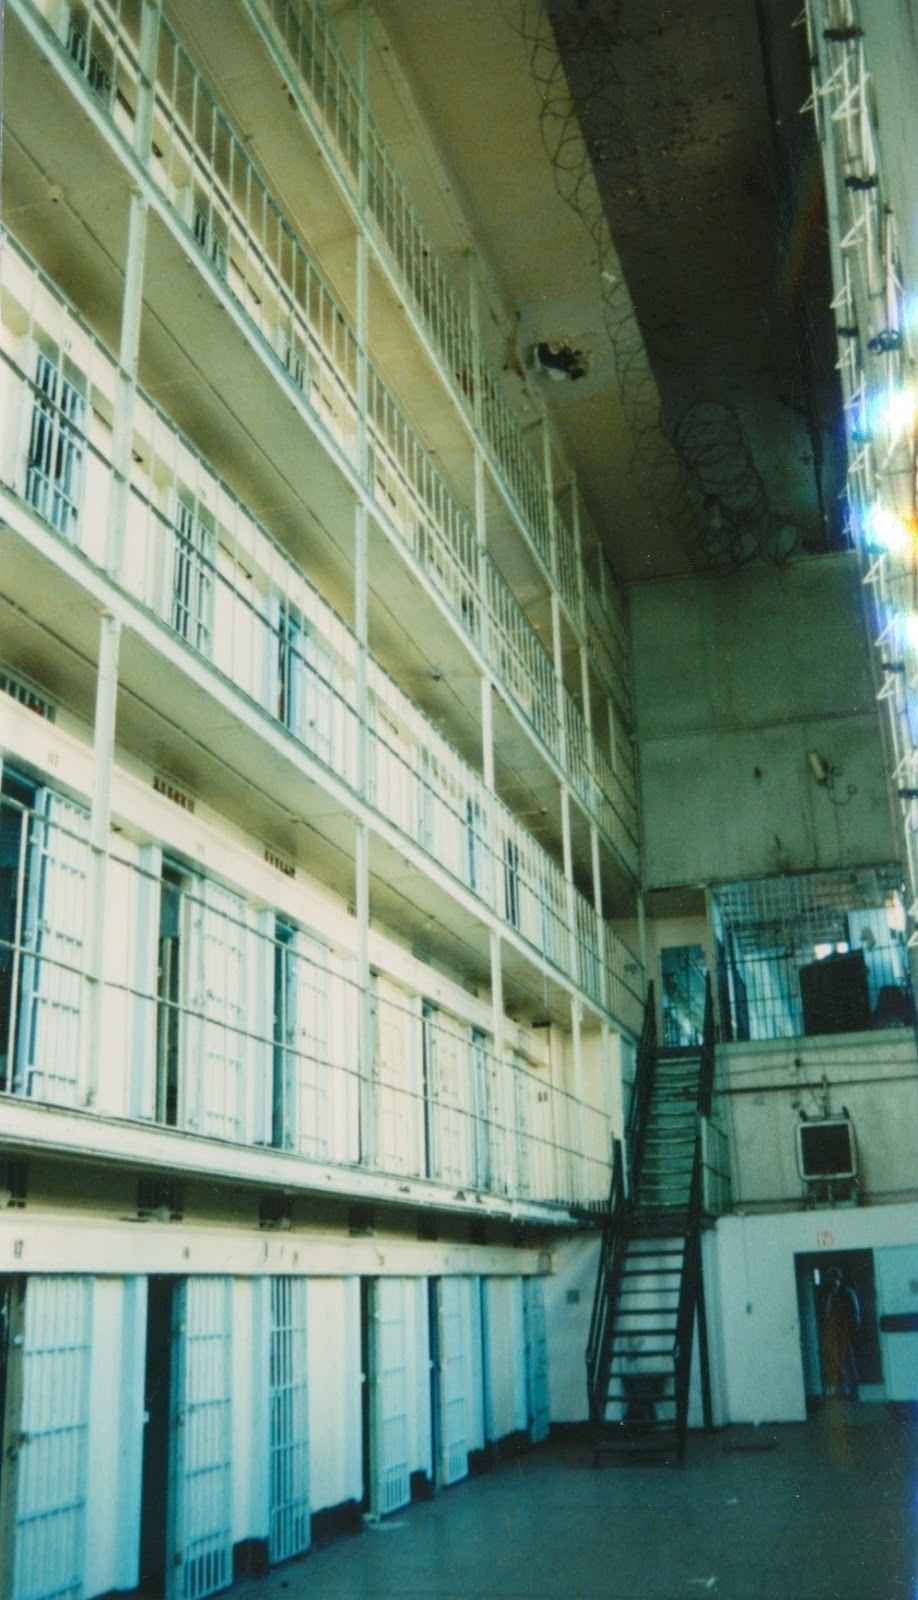 Although Cold And Quiet In This Photograph, This Area Of The State  Penitentiary Must Have Been Noisy And Hellacious Hot Space In The  Summertime,